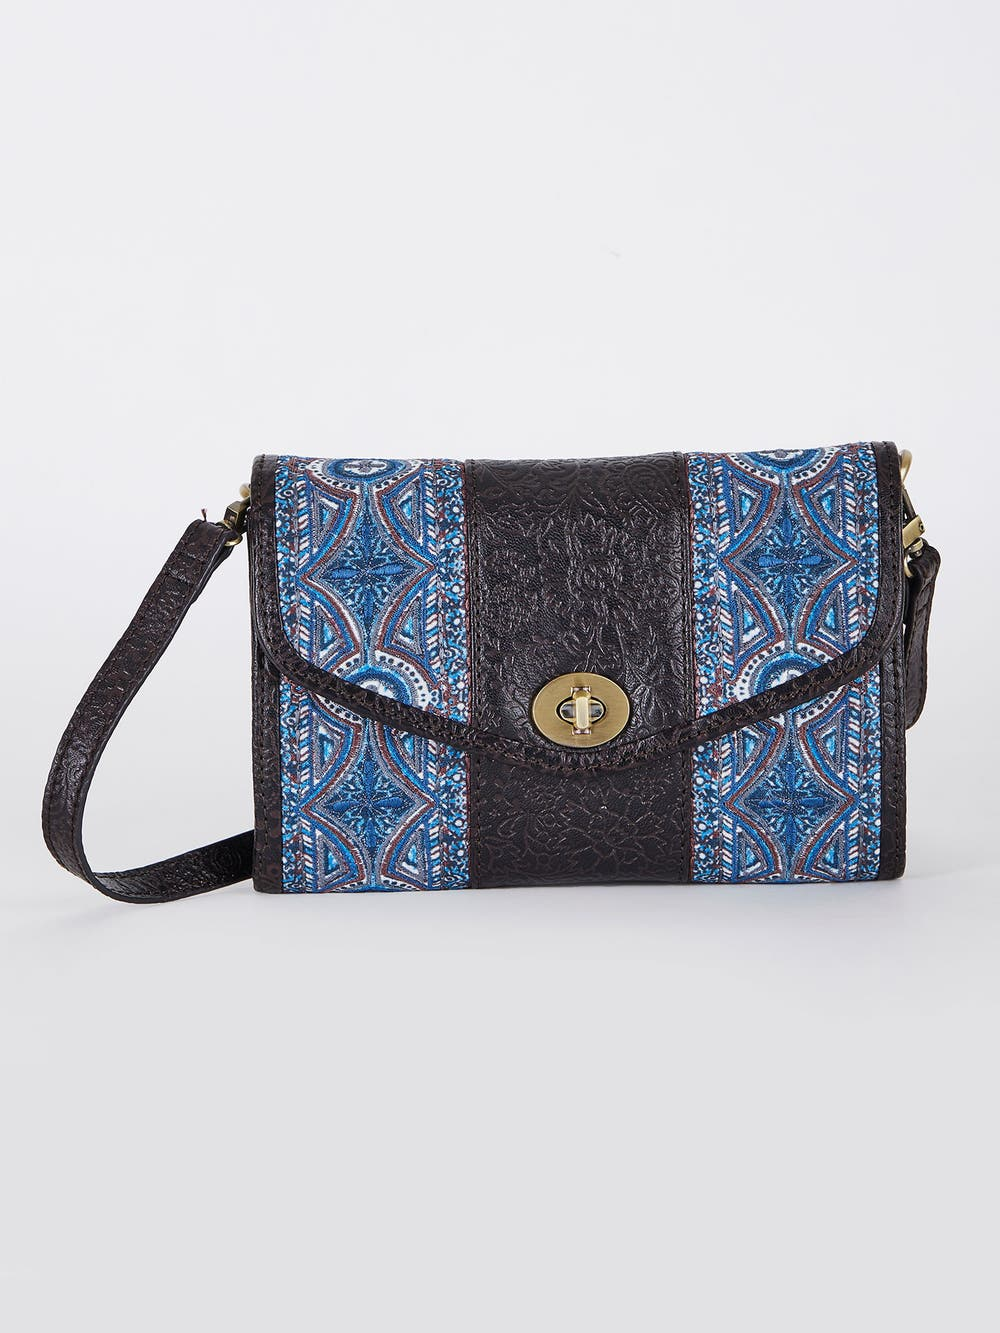 Blue & Brown Embossed Leather Sling Bag